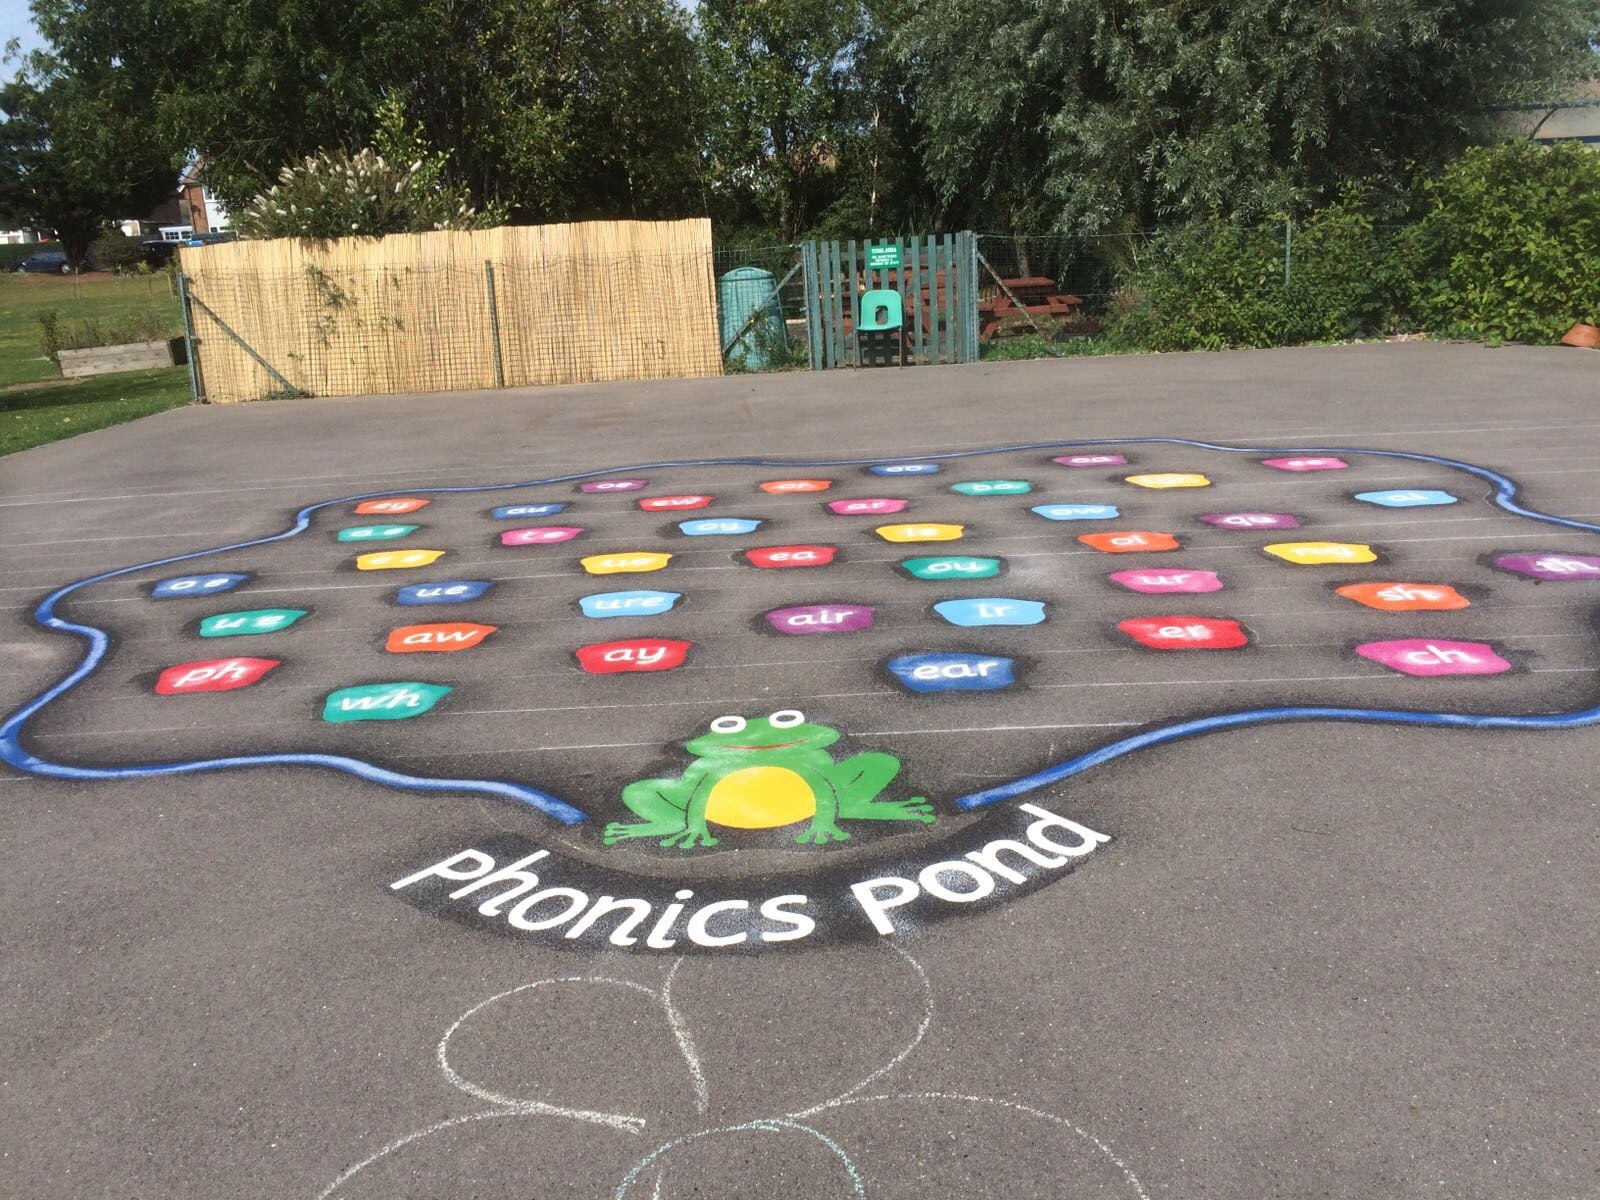 The 40 Sound Phonics Pond